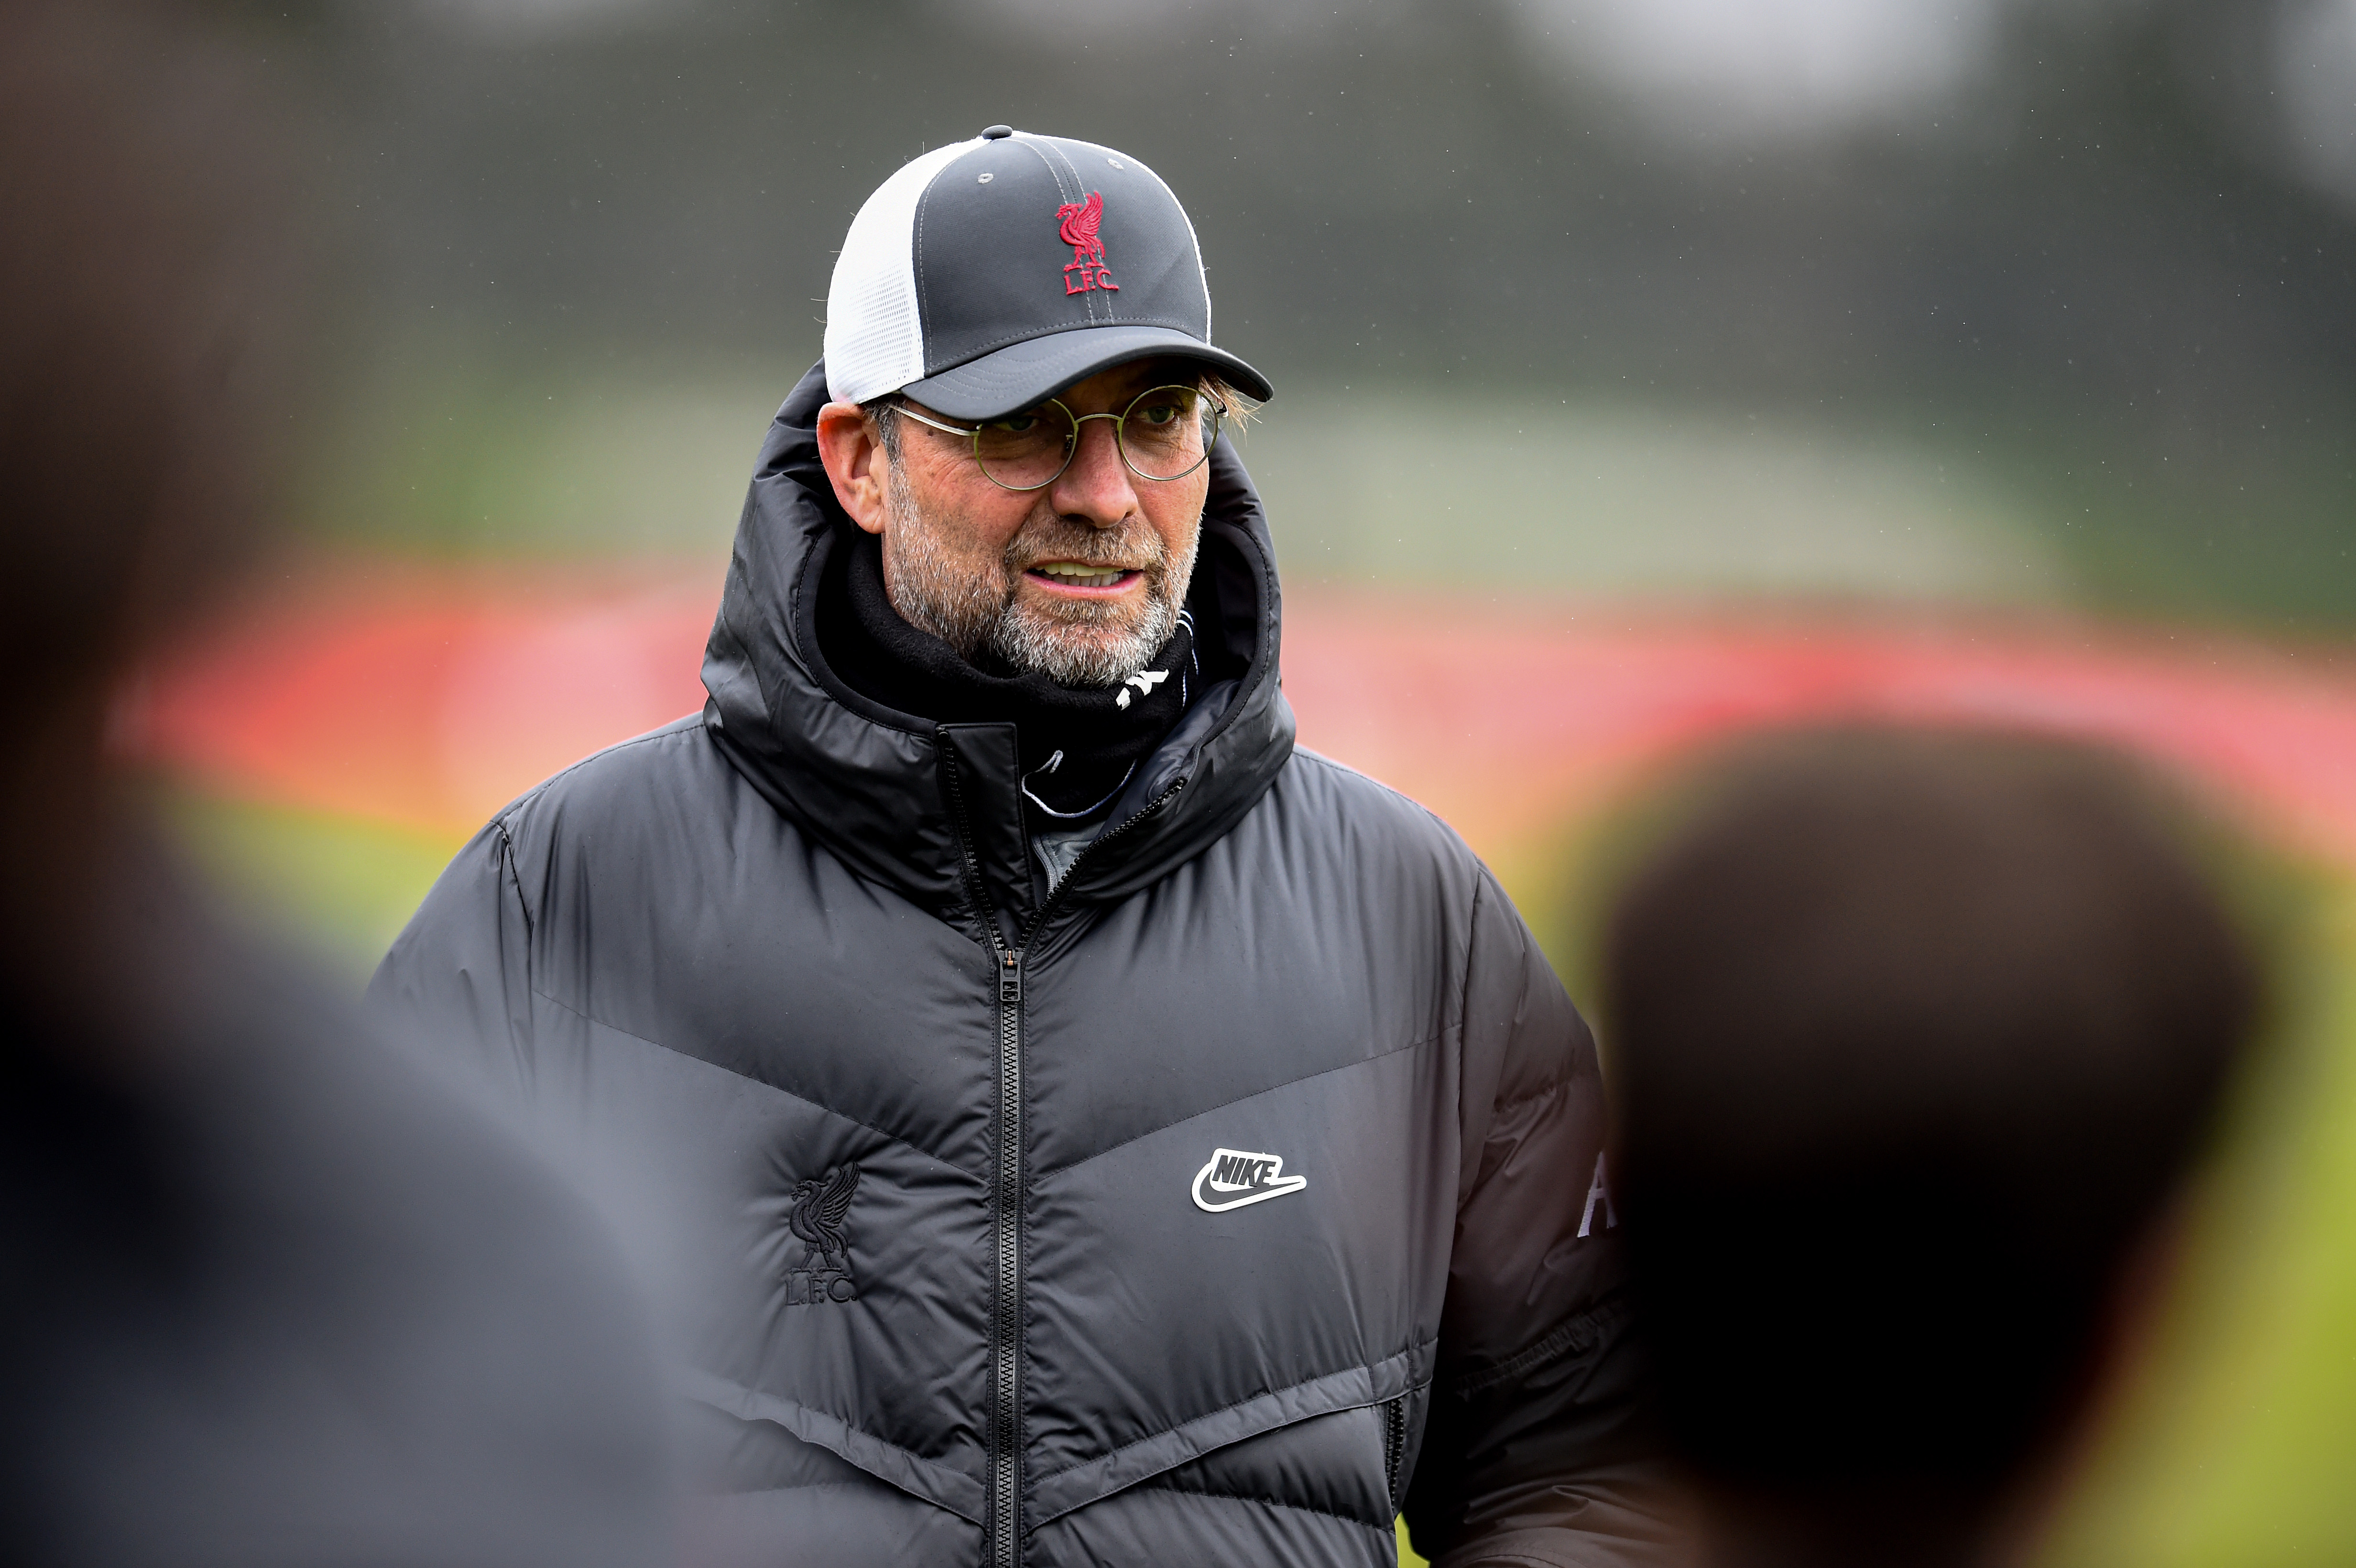 Jurgen Klopp manager of Liverpool during a training session at AXA Training Centre on March 18, 2021 in Kirkby, England.